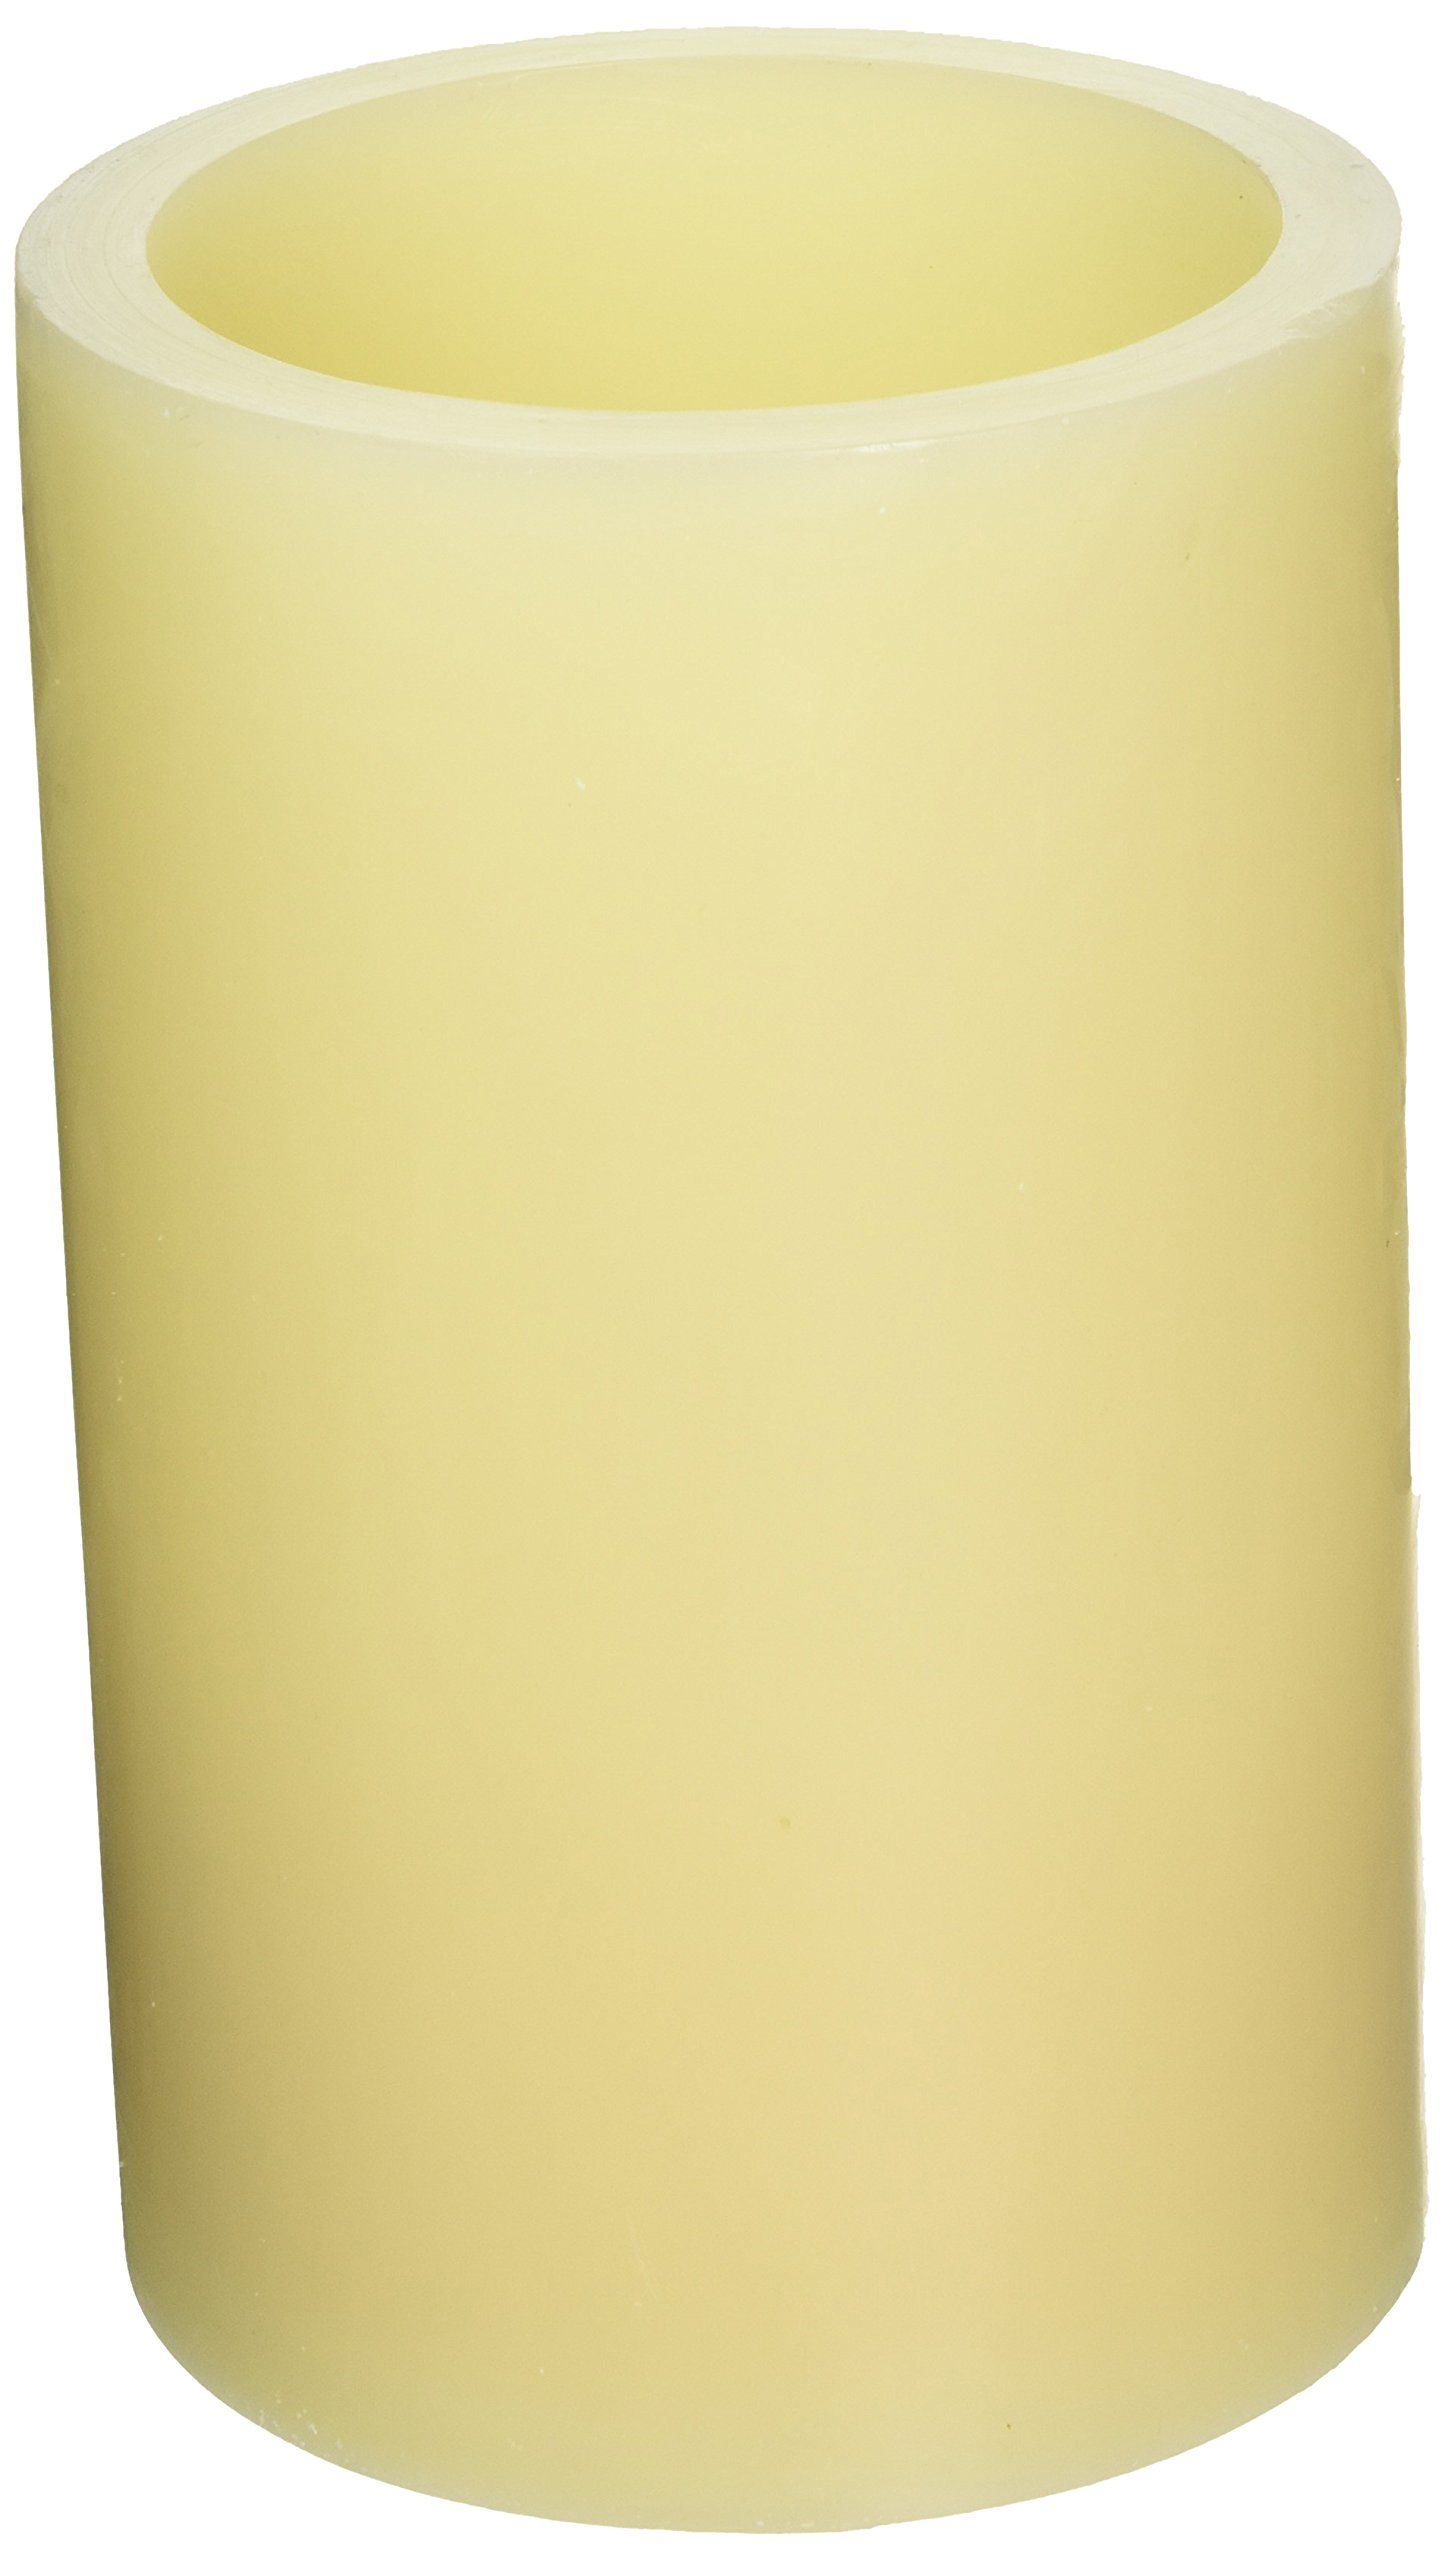 Pacific Accents Flameless Wax Pillar Candle - Ivory